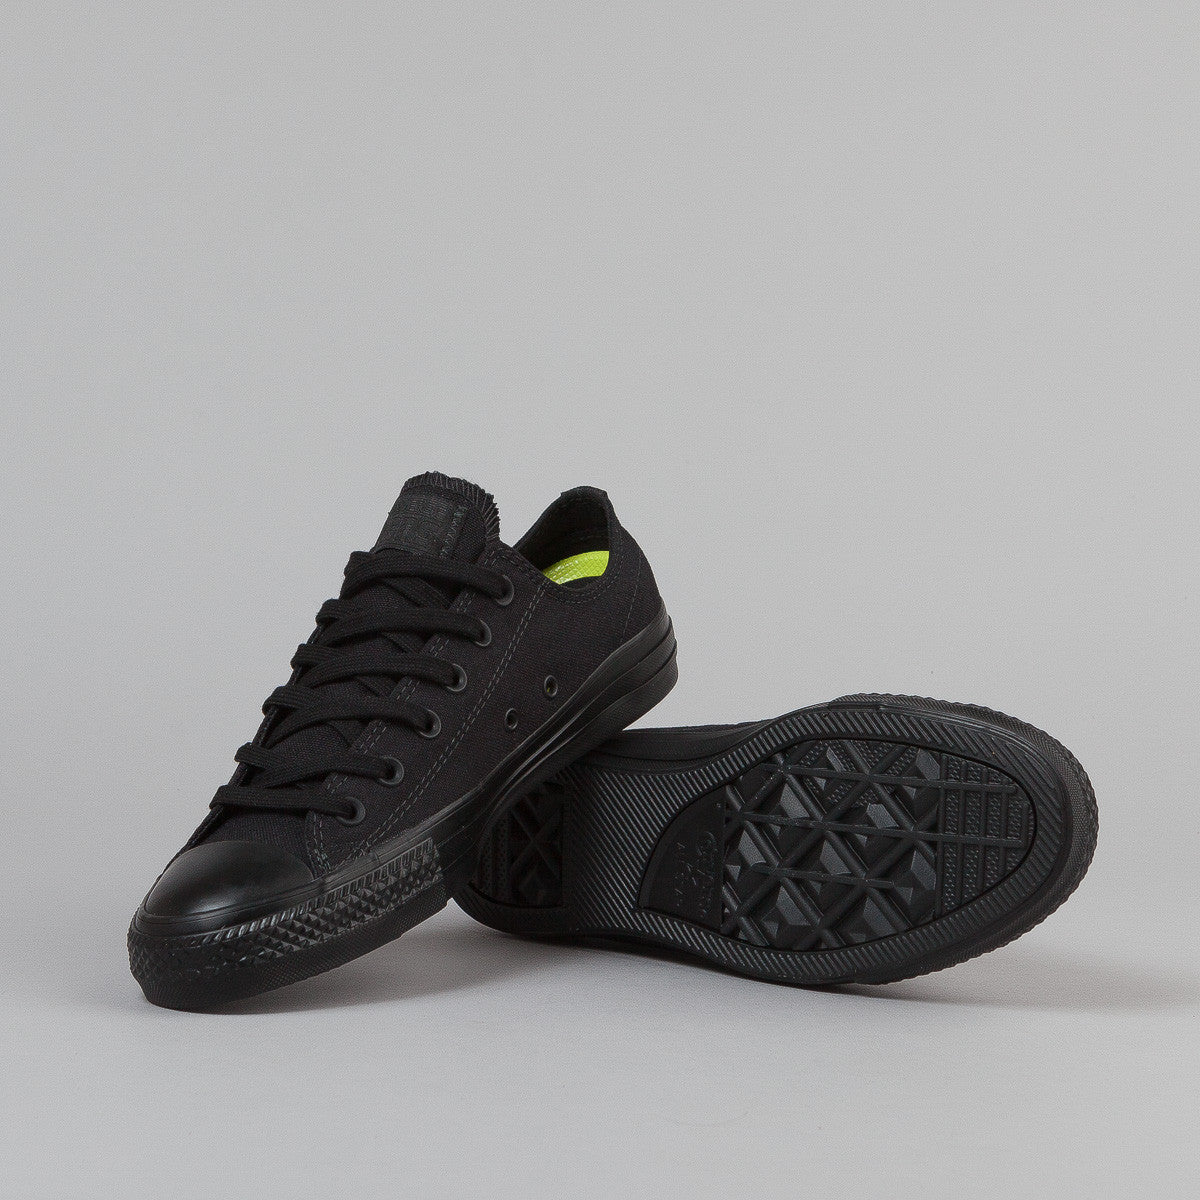 Converse CTAS Pro OX Shoes - Black / Black